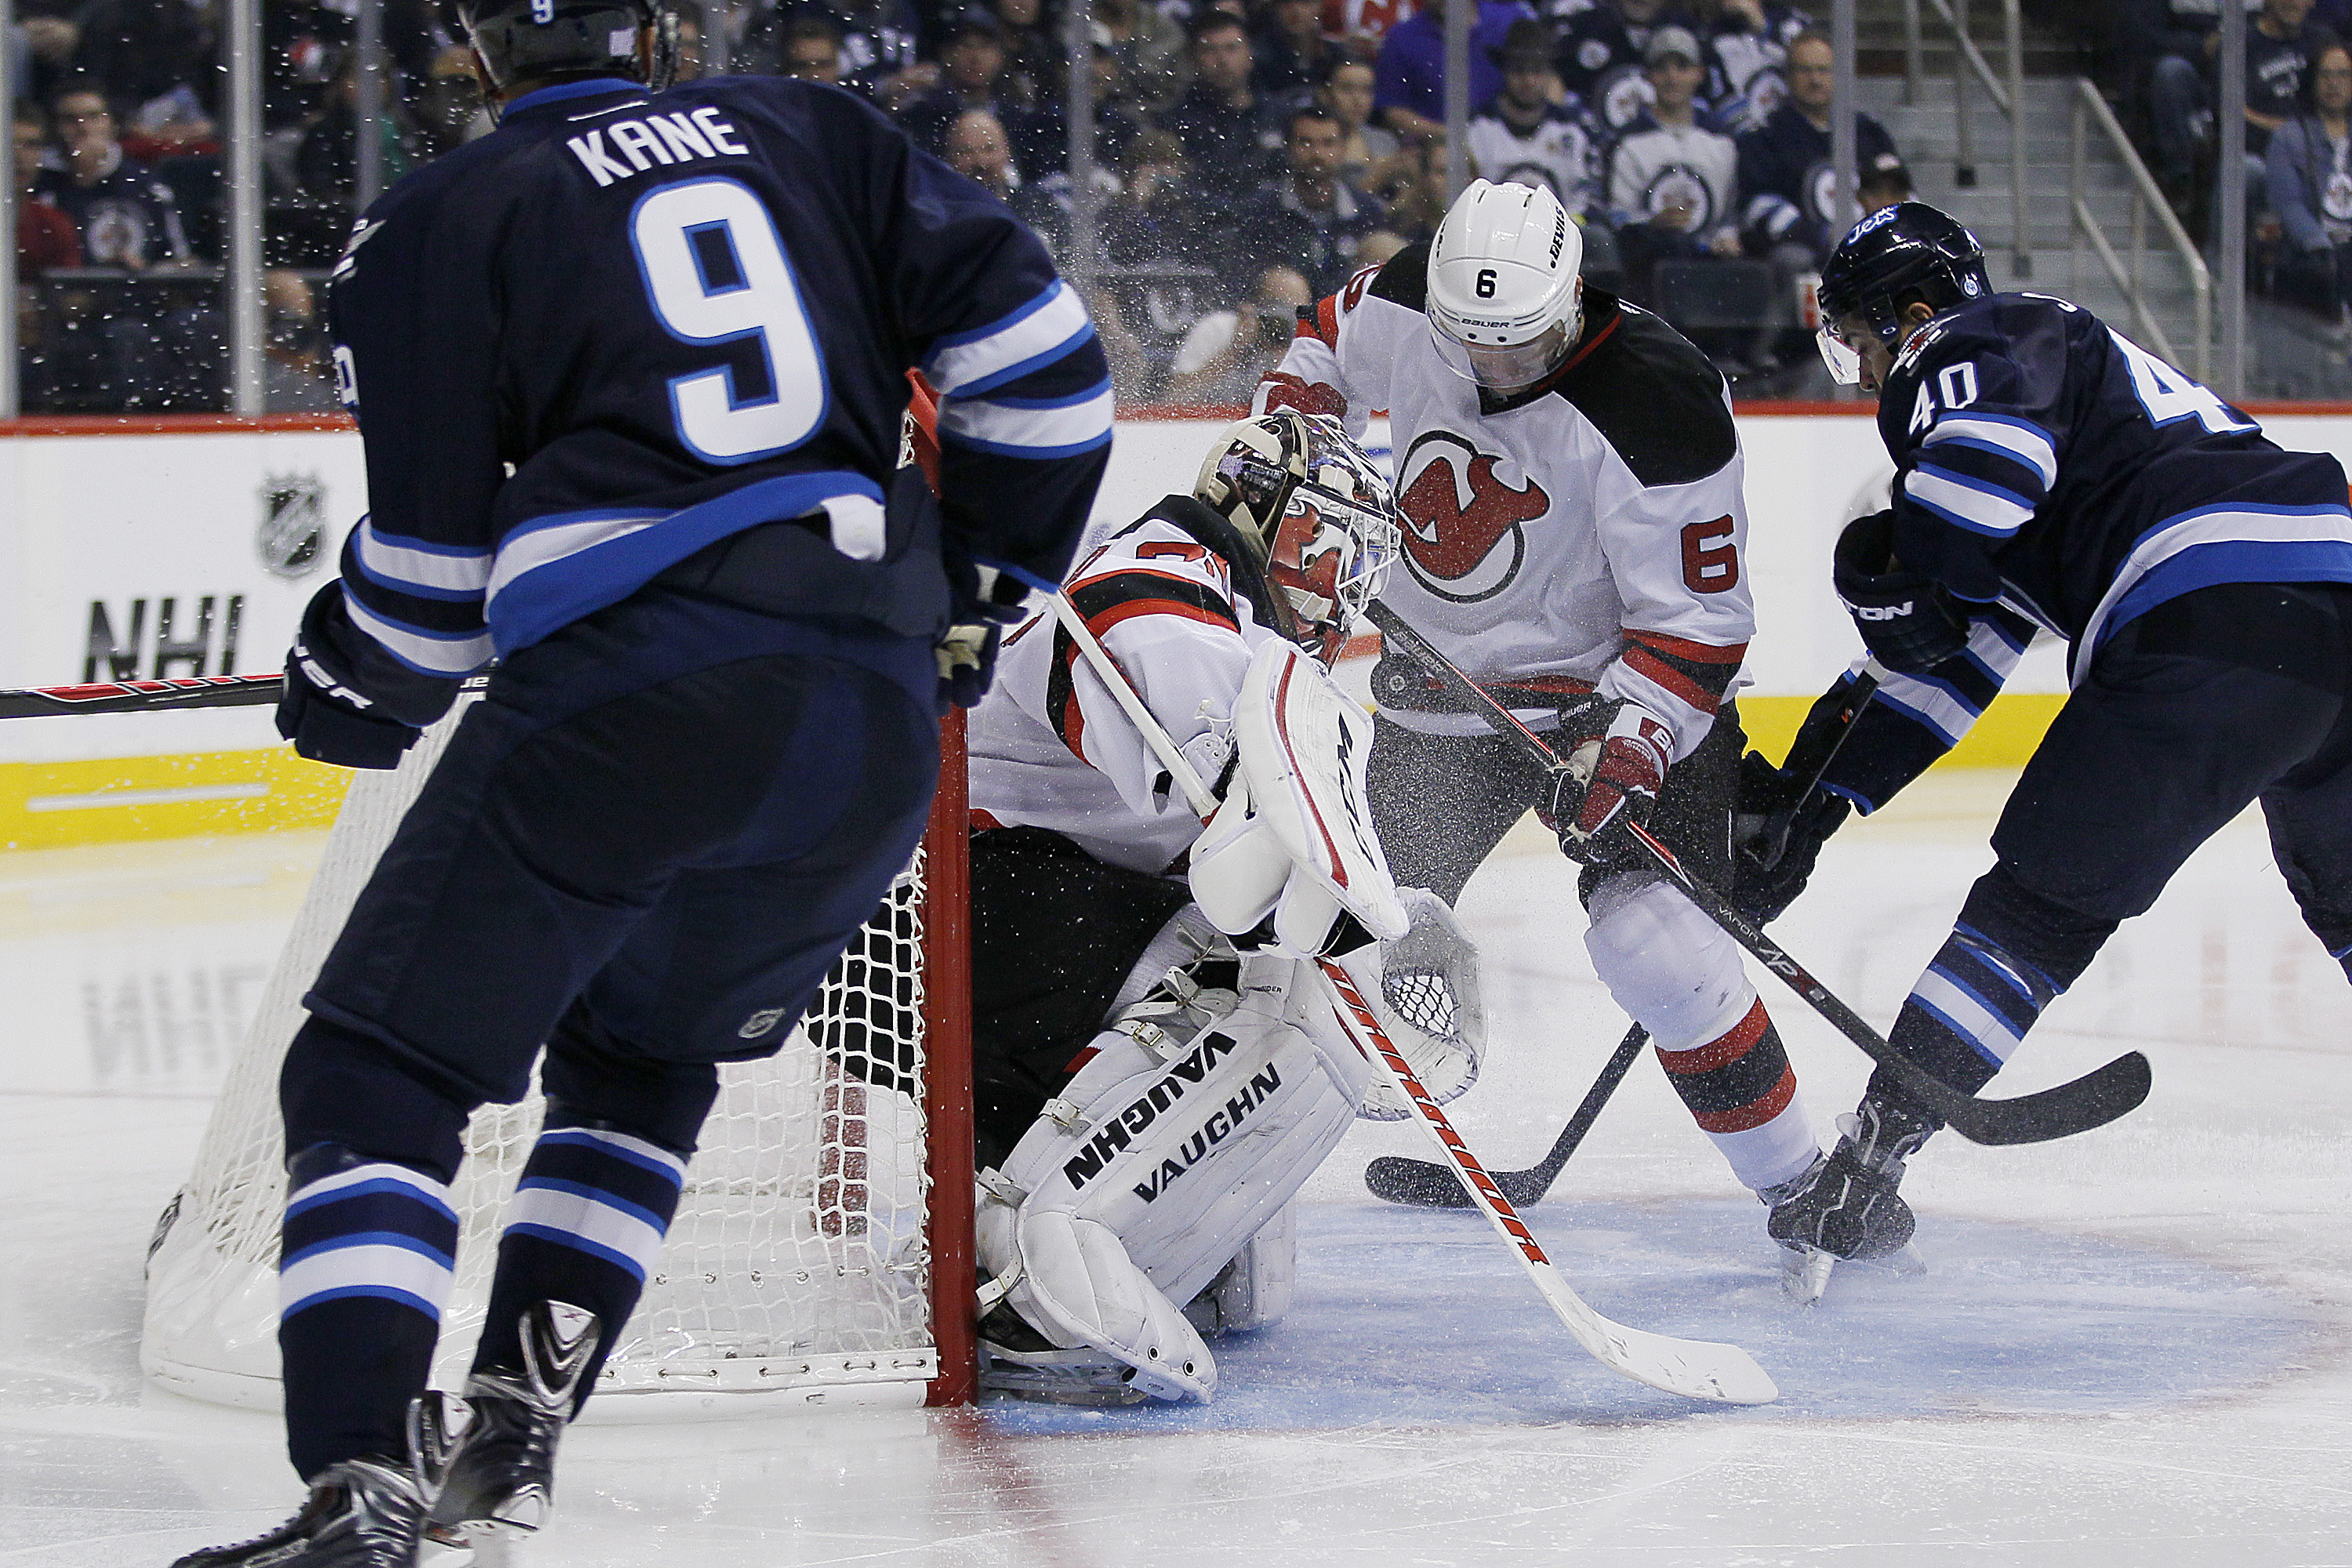 Evander Kane's shot deflects off New Jersey Devils' Andy Greene and past goaltender Cory Schneider for the Jets first goal during the second period.